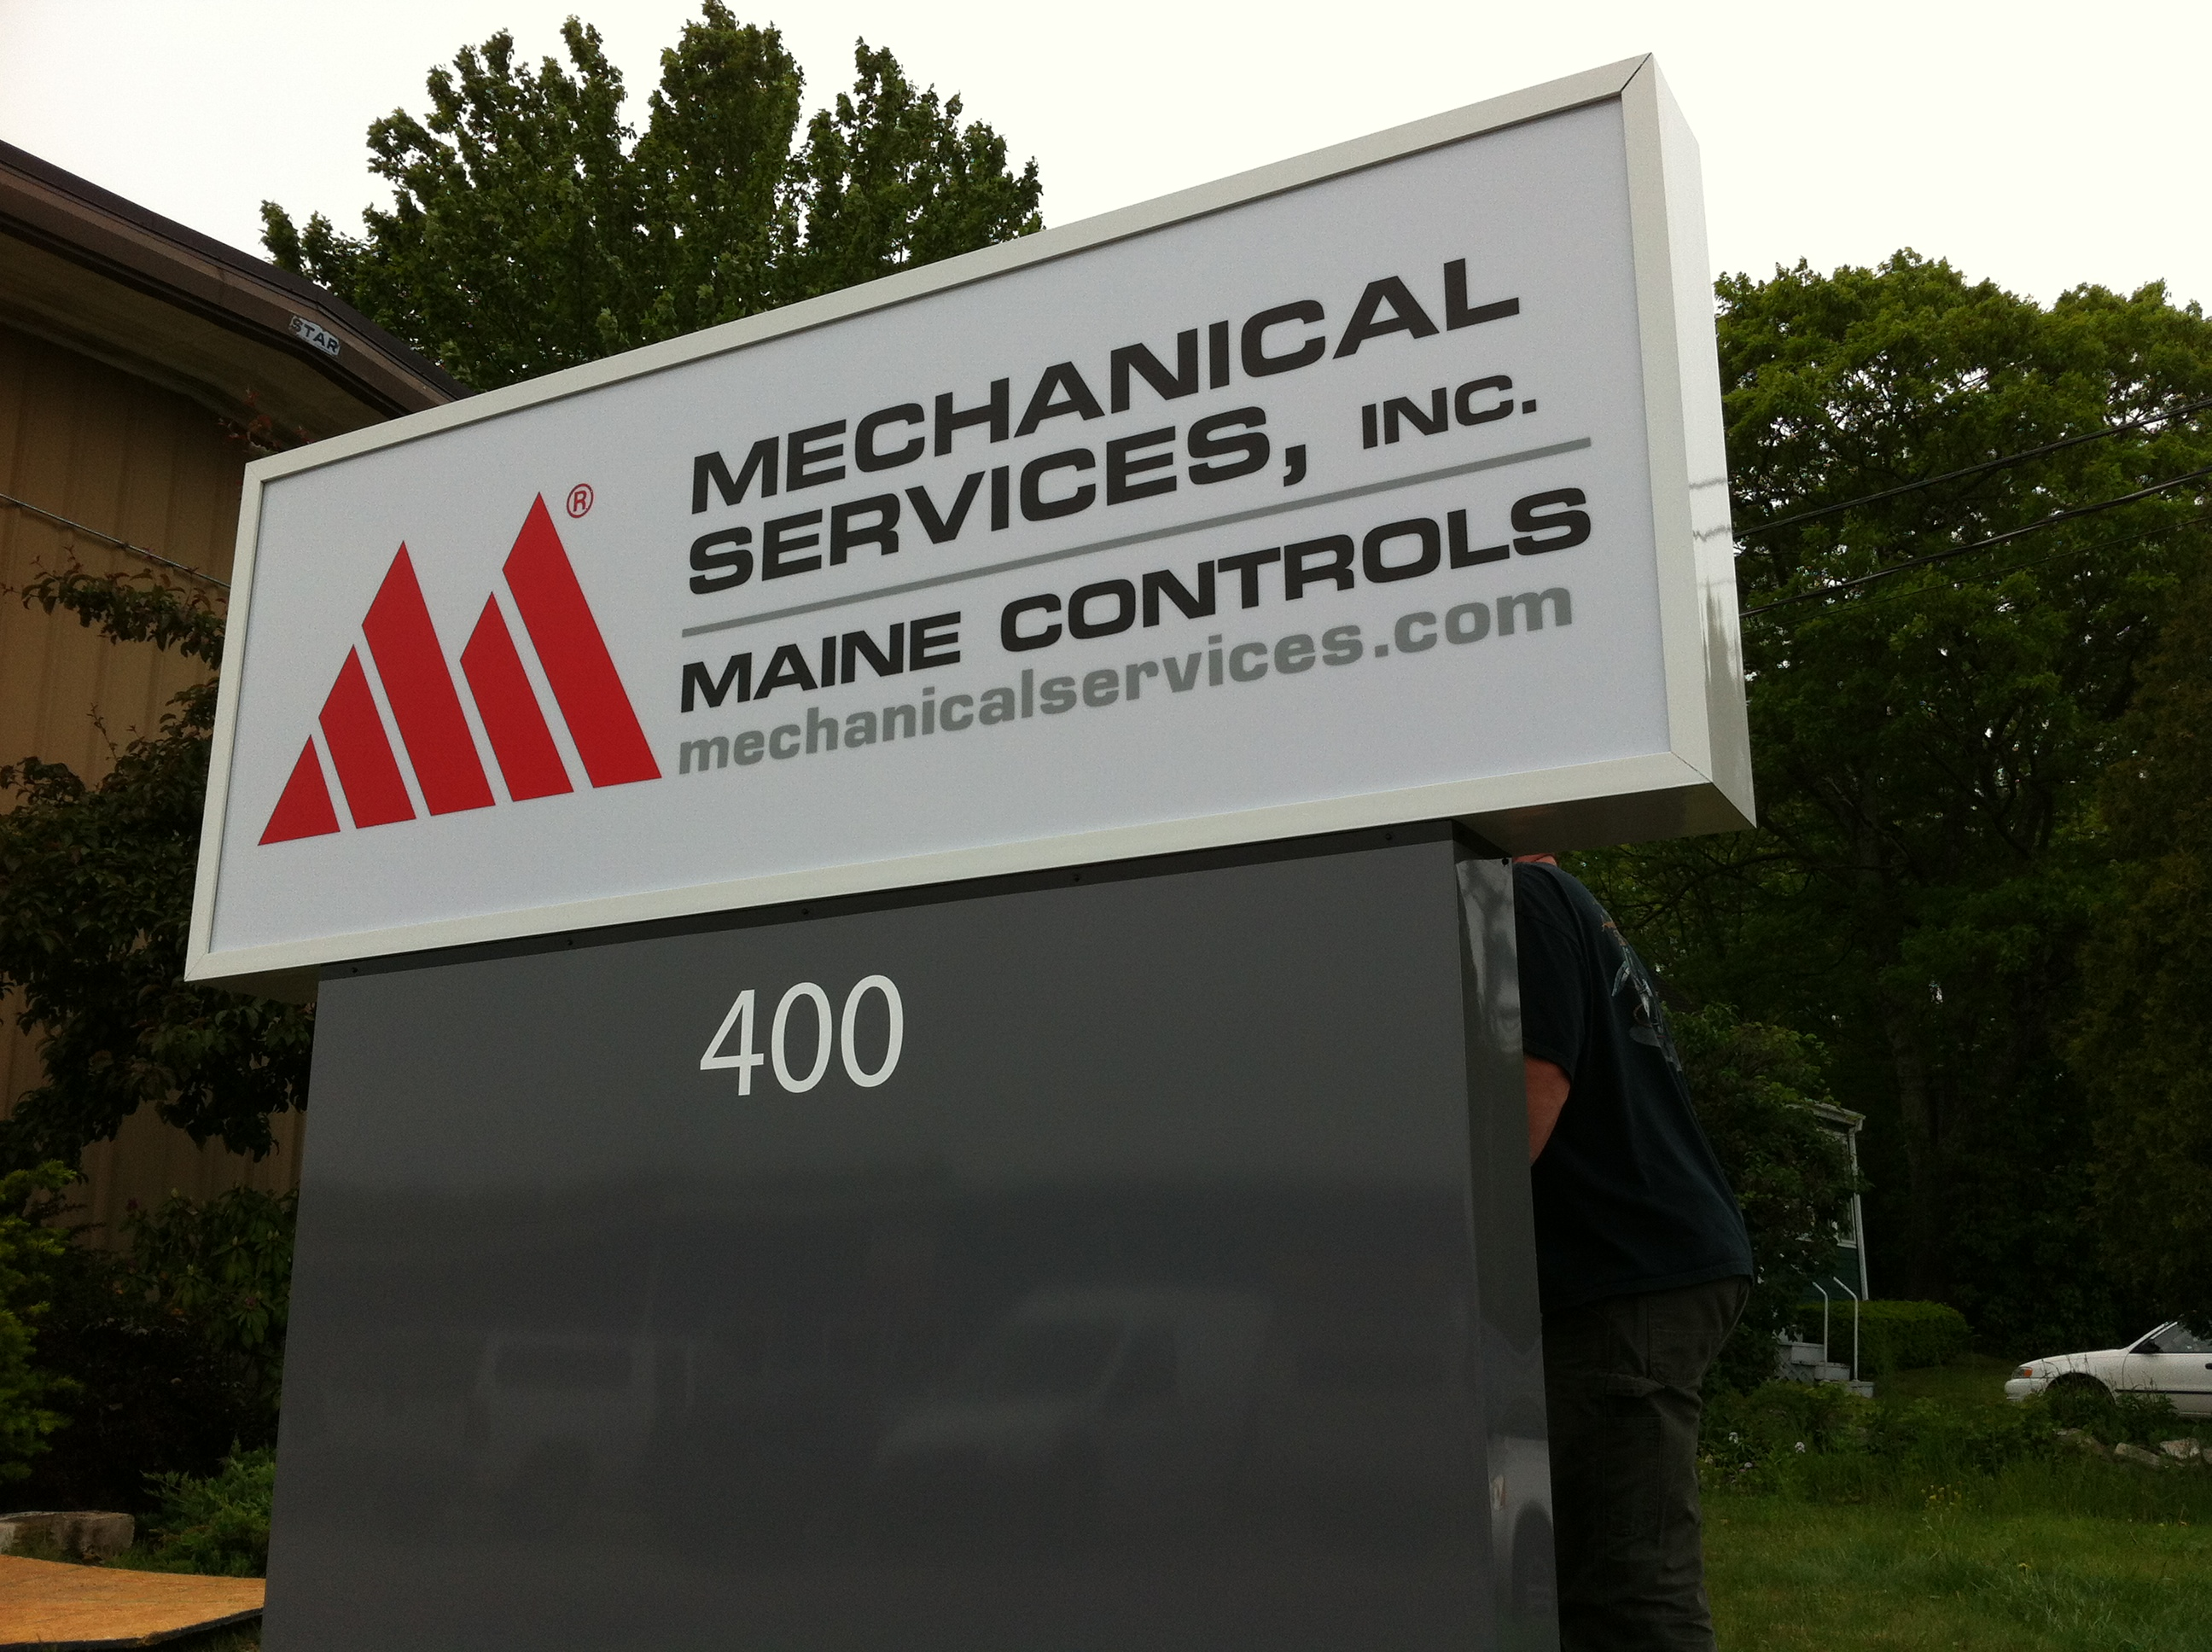 Mechanical Services, Inc